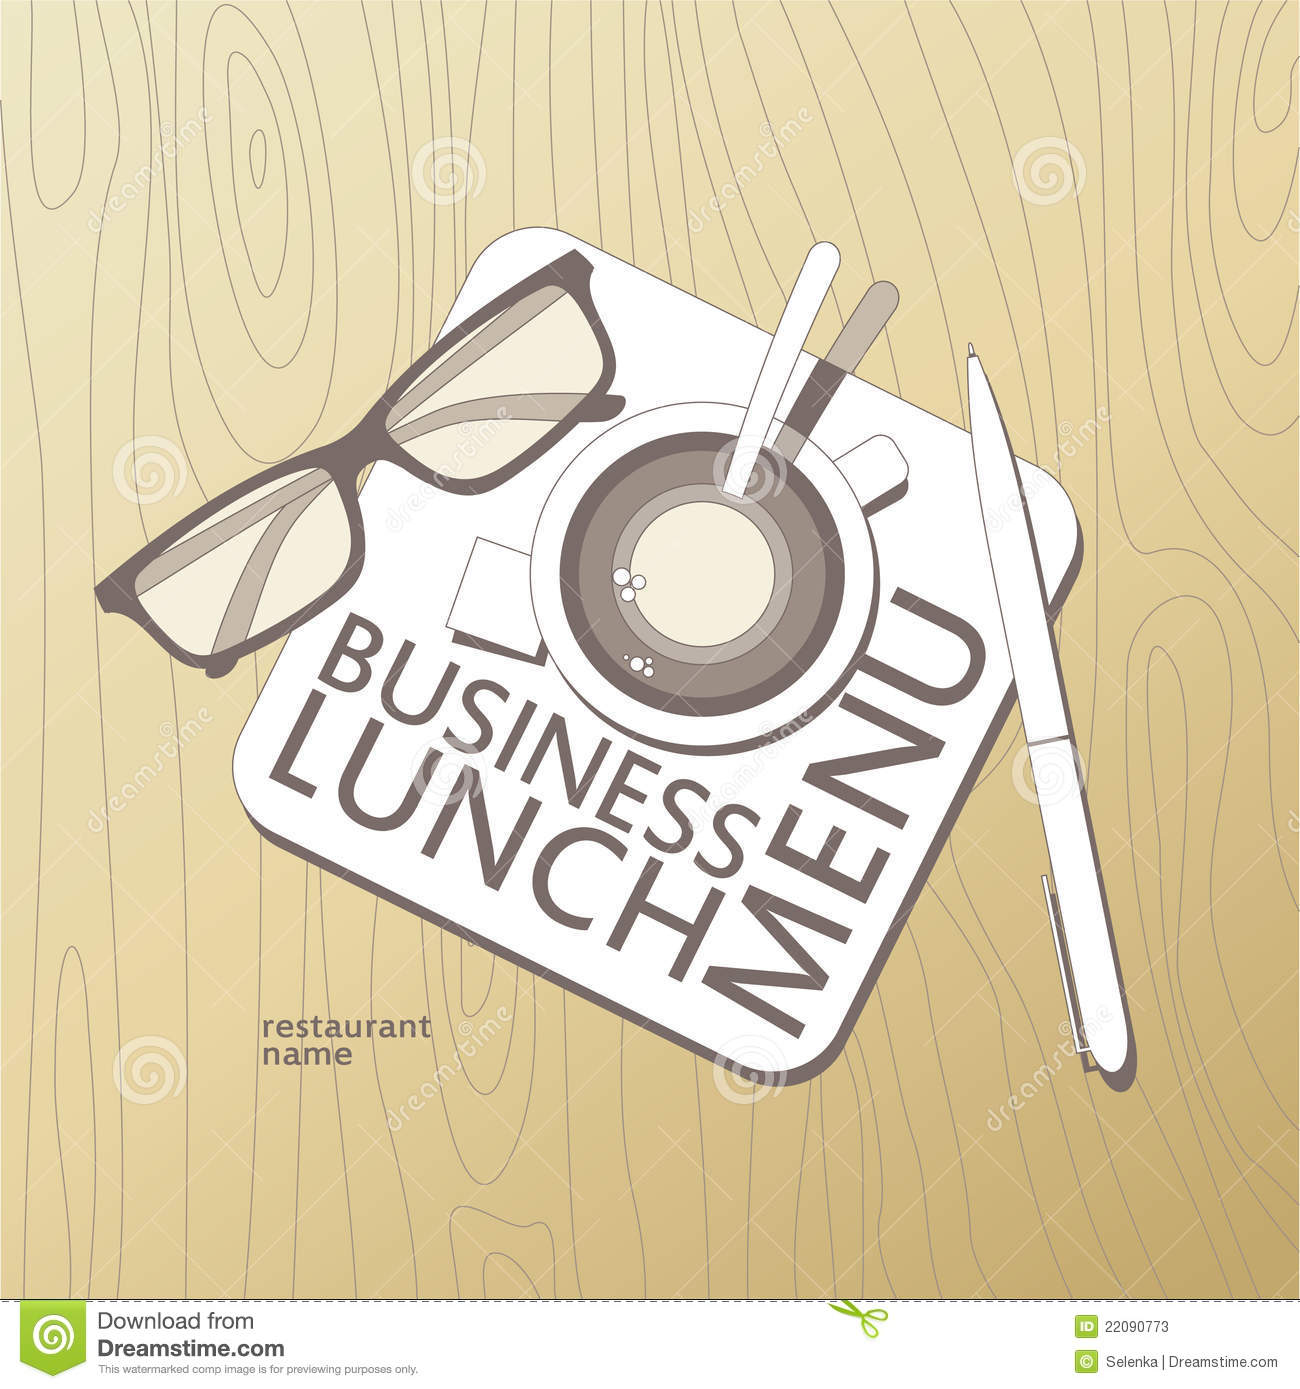 Business Lunch Menu Template. Stock Photos.